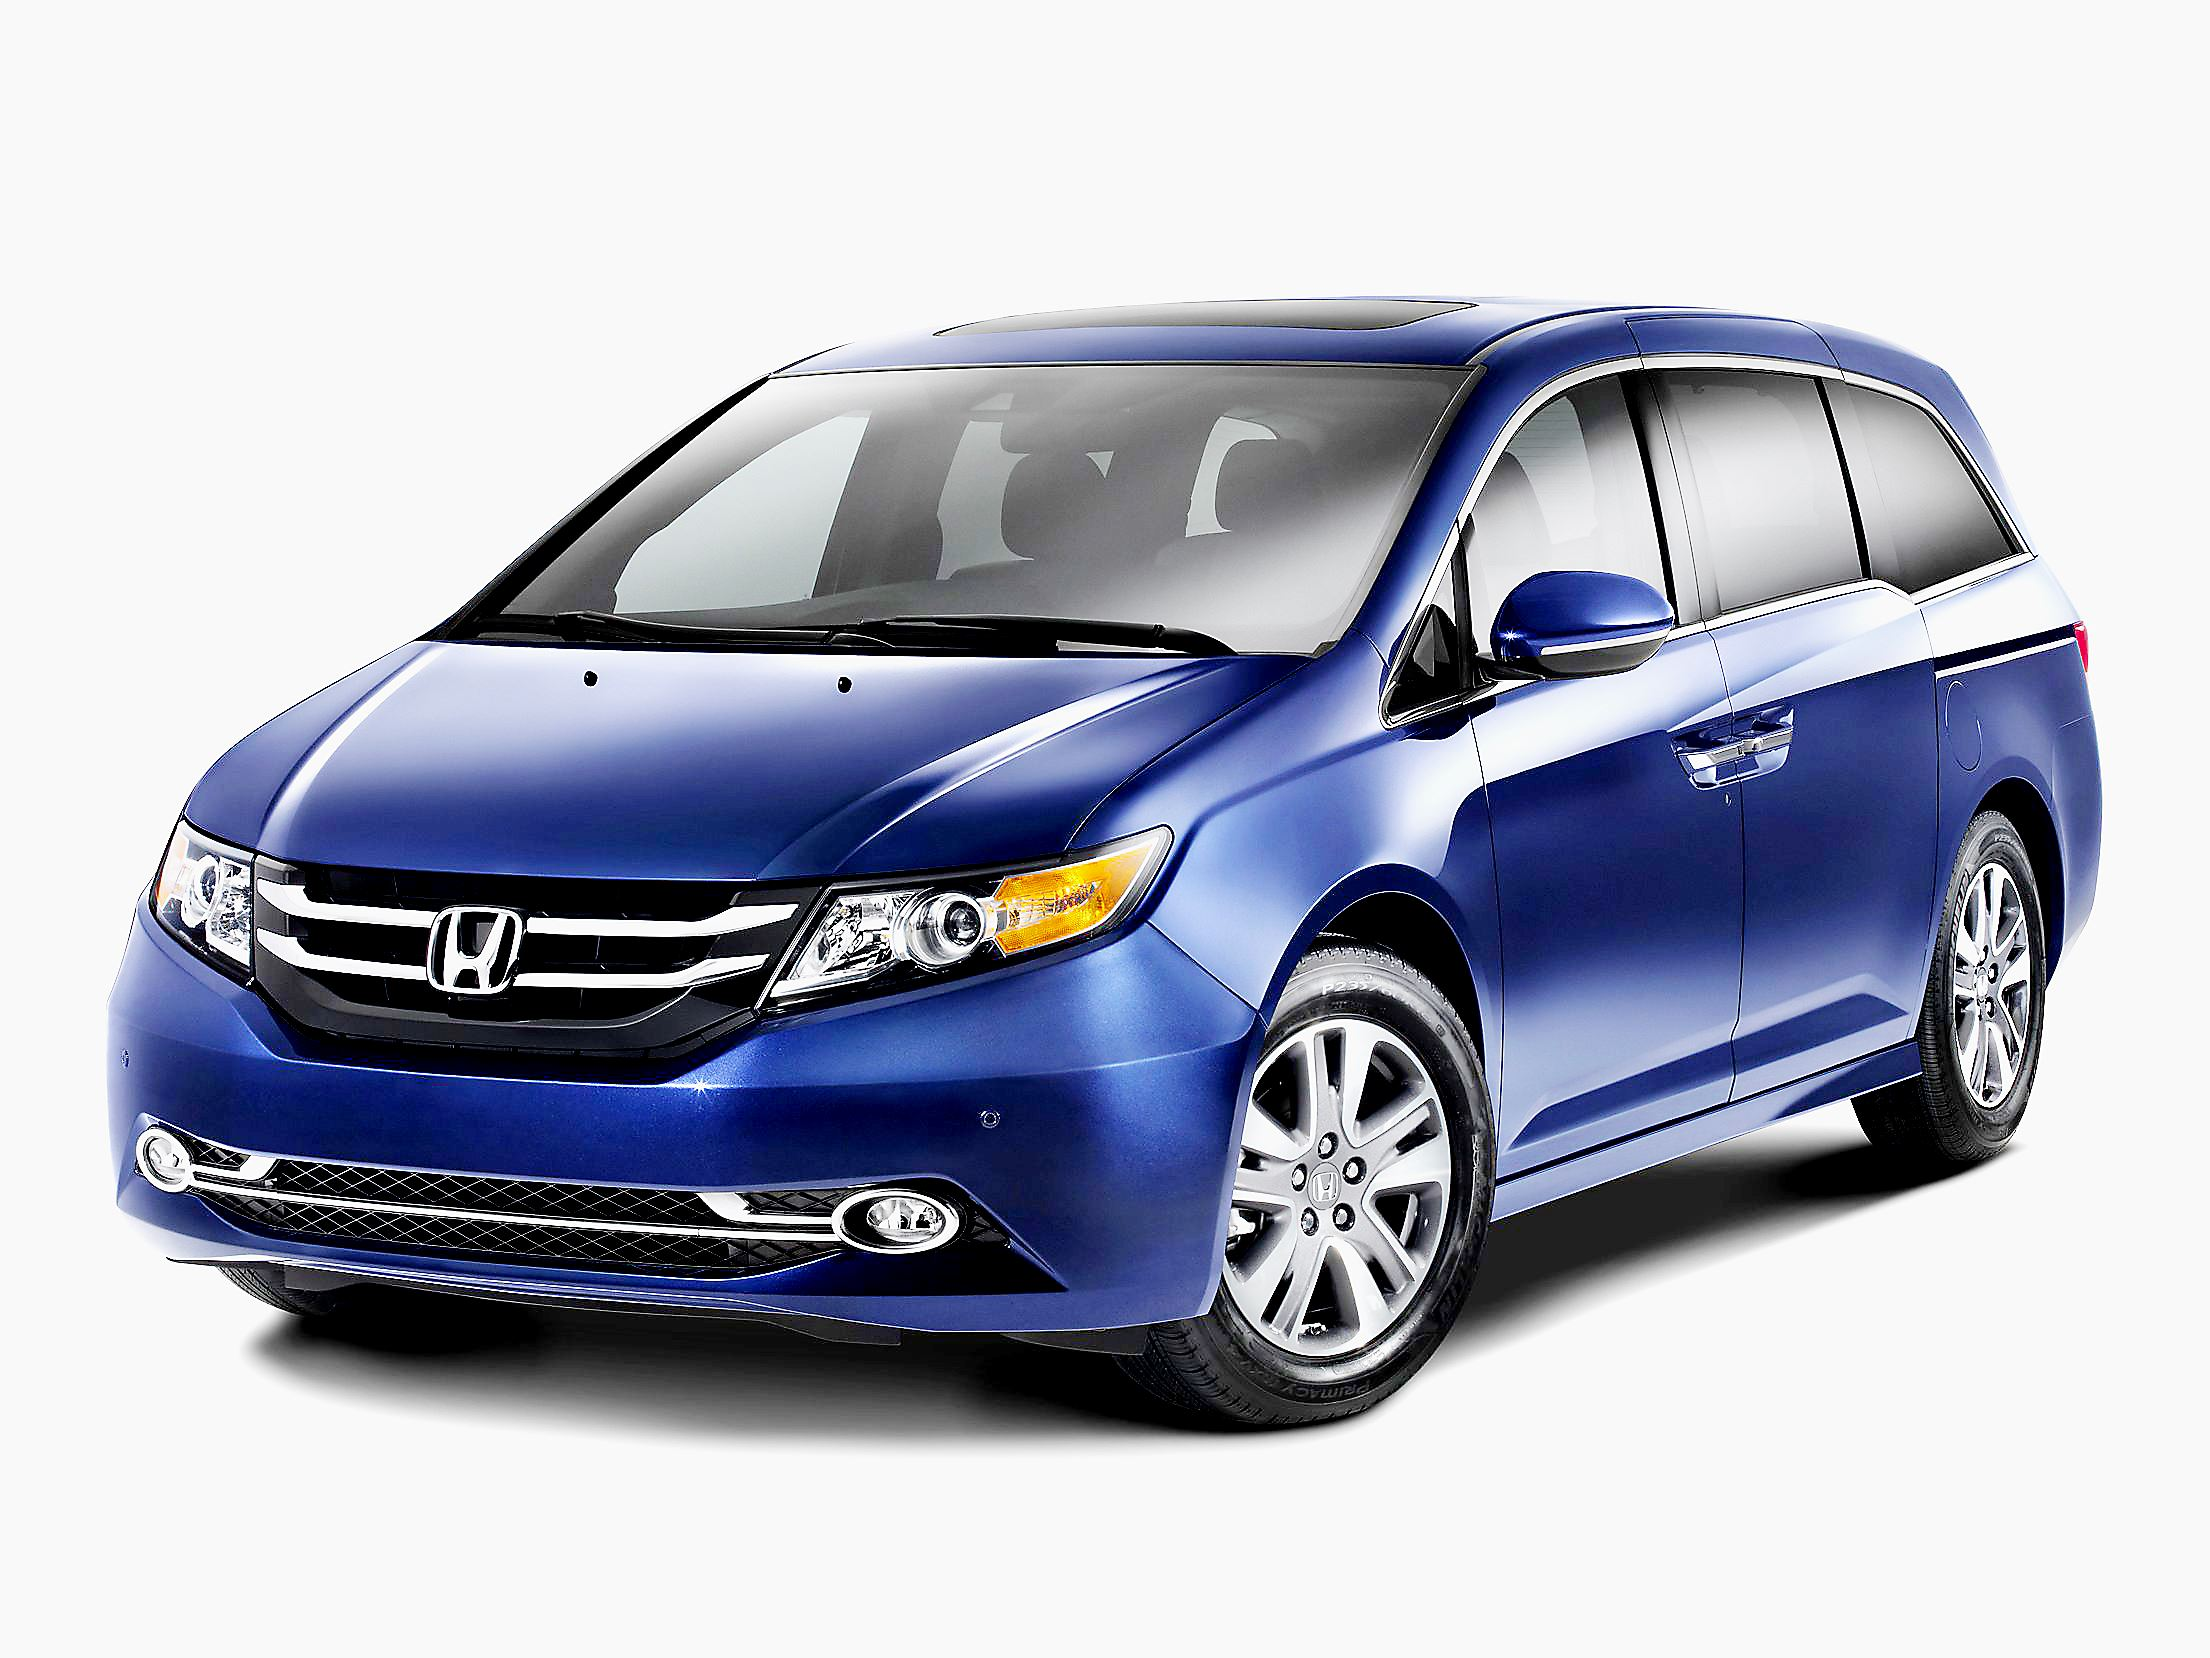 2014 honda odyssey touring elite car photos catalog 2018. Black Bedroom Furniture Sets. Home Design Ideas